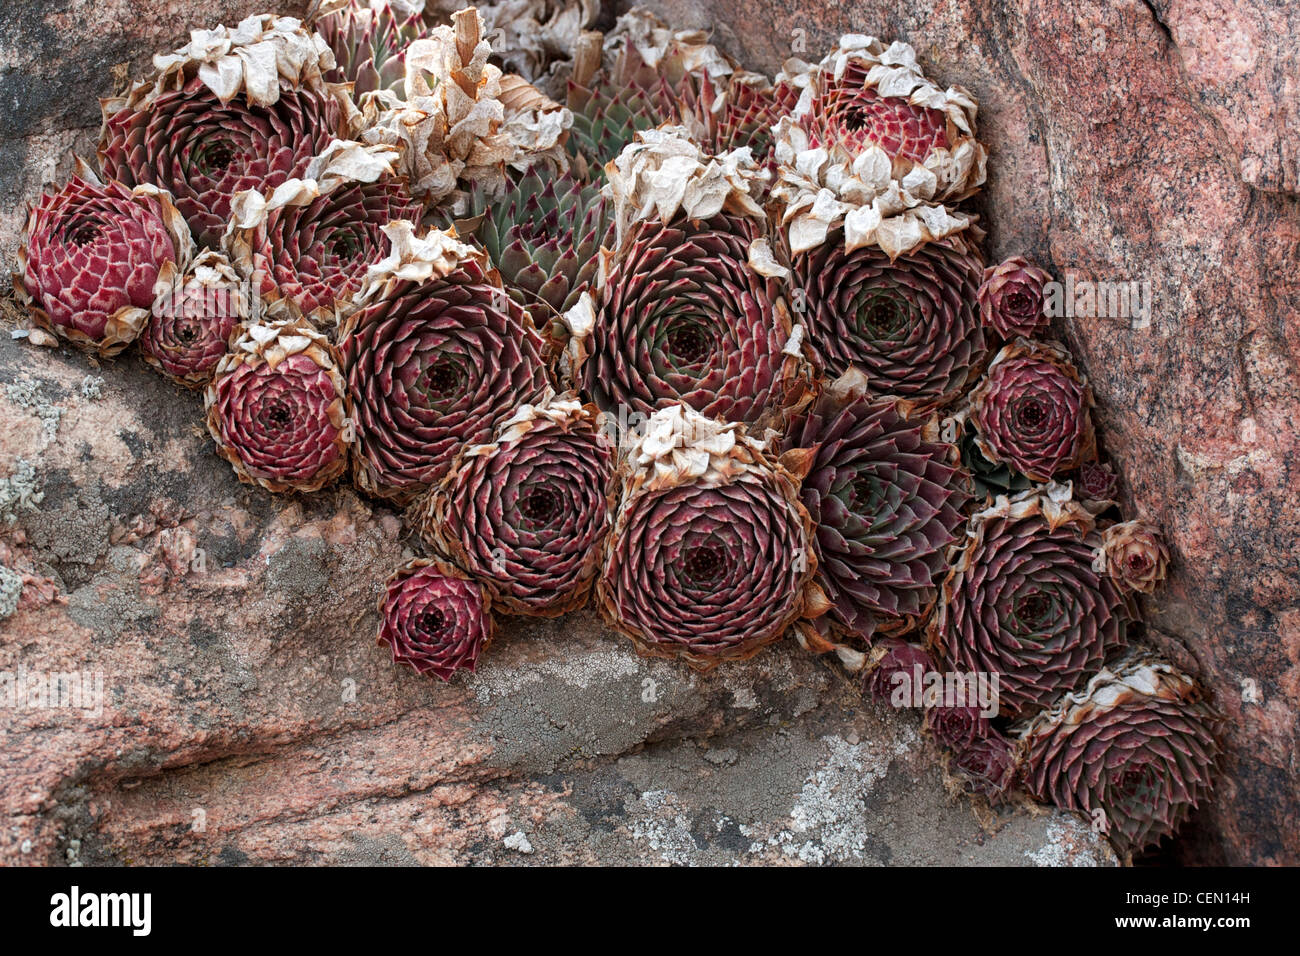 Hens-and Chicks as they appear in late winter - Stock Image